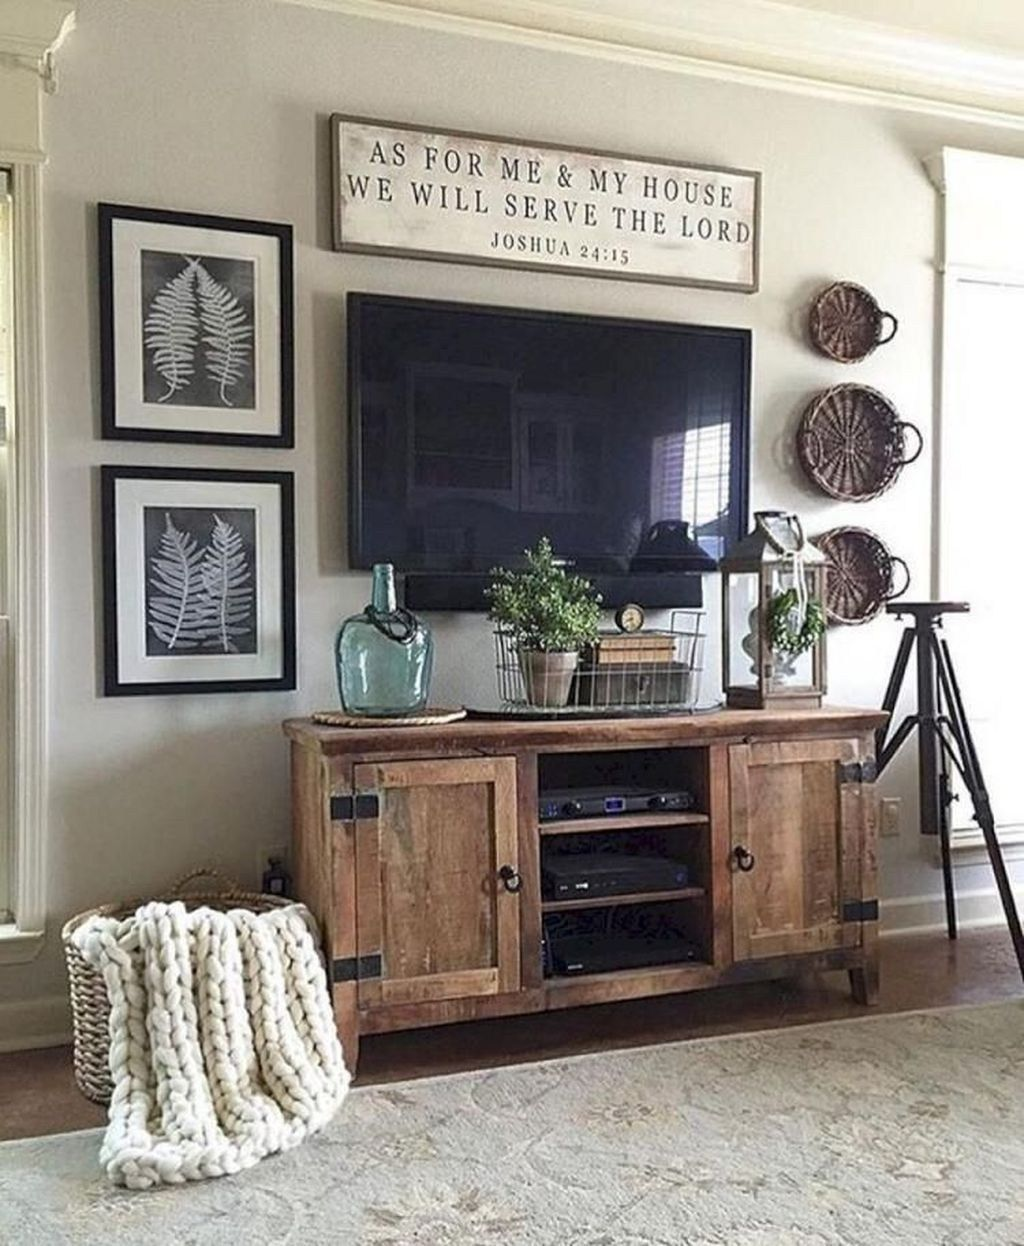 Pin by Jazzy on room ideas in 2019 Cheap home decor